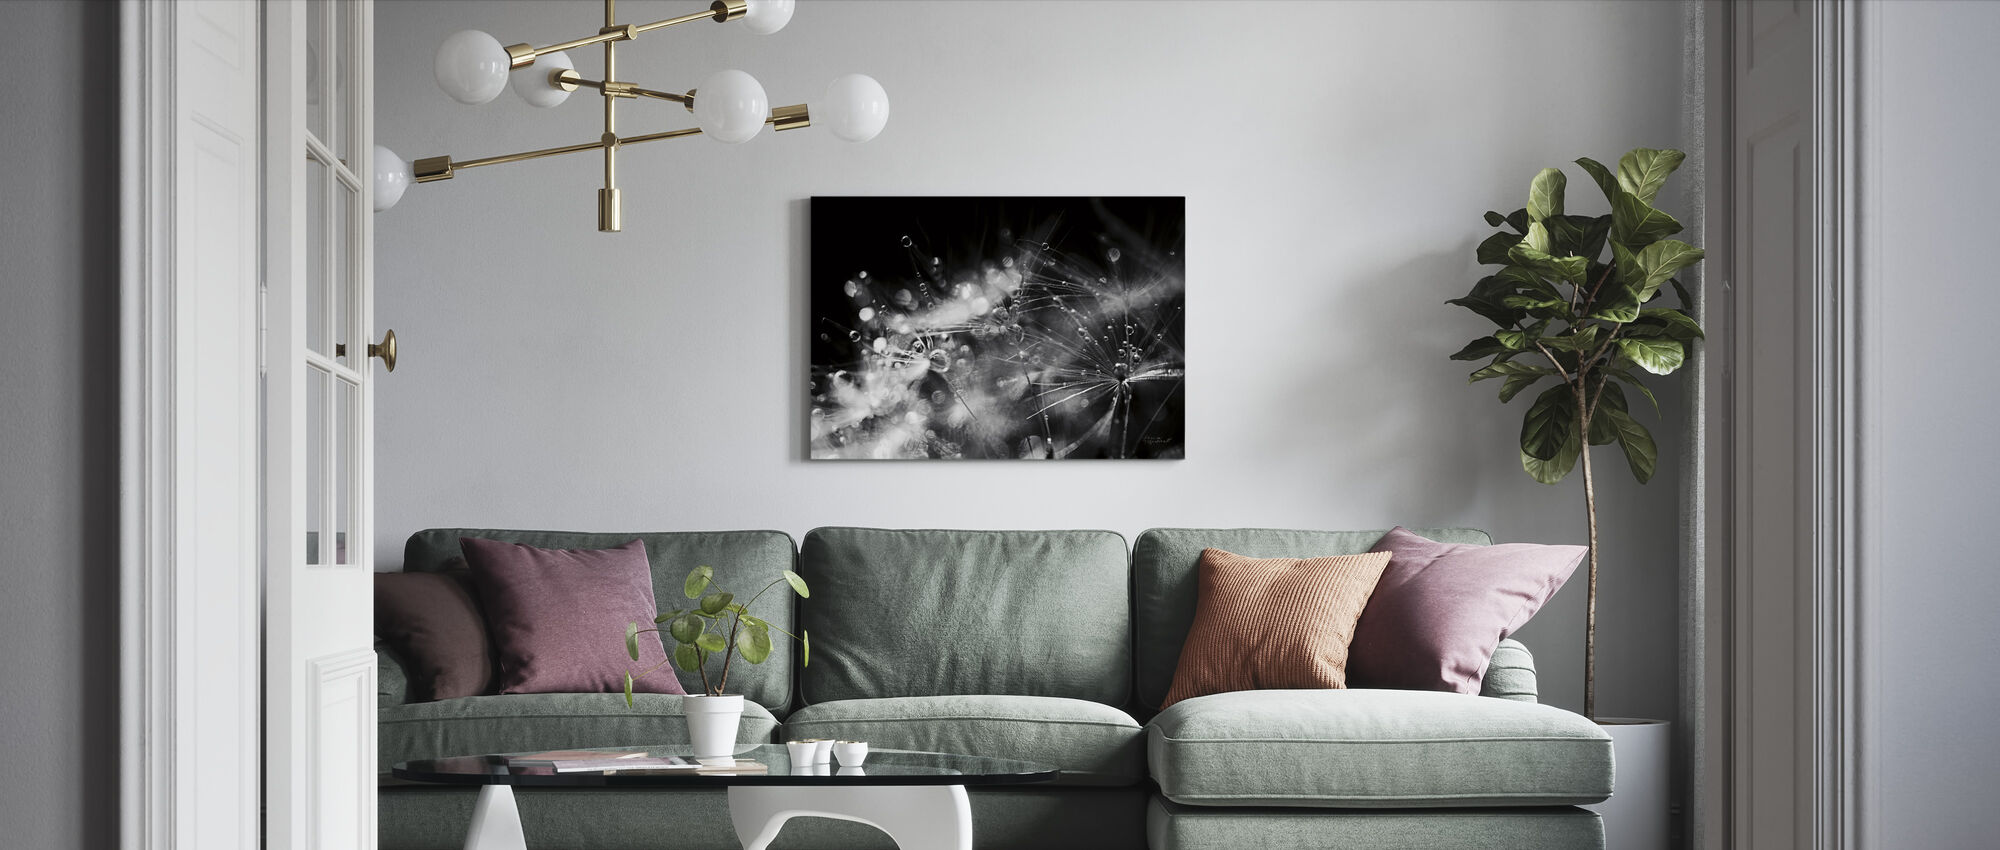 Dandelion Abstract - Canvas print - Living Room